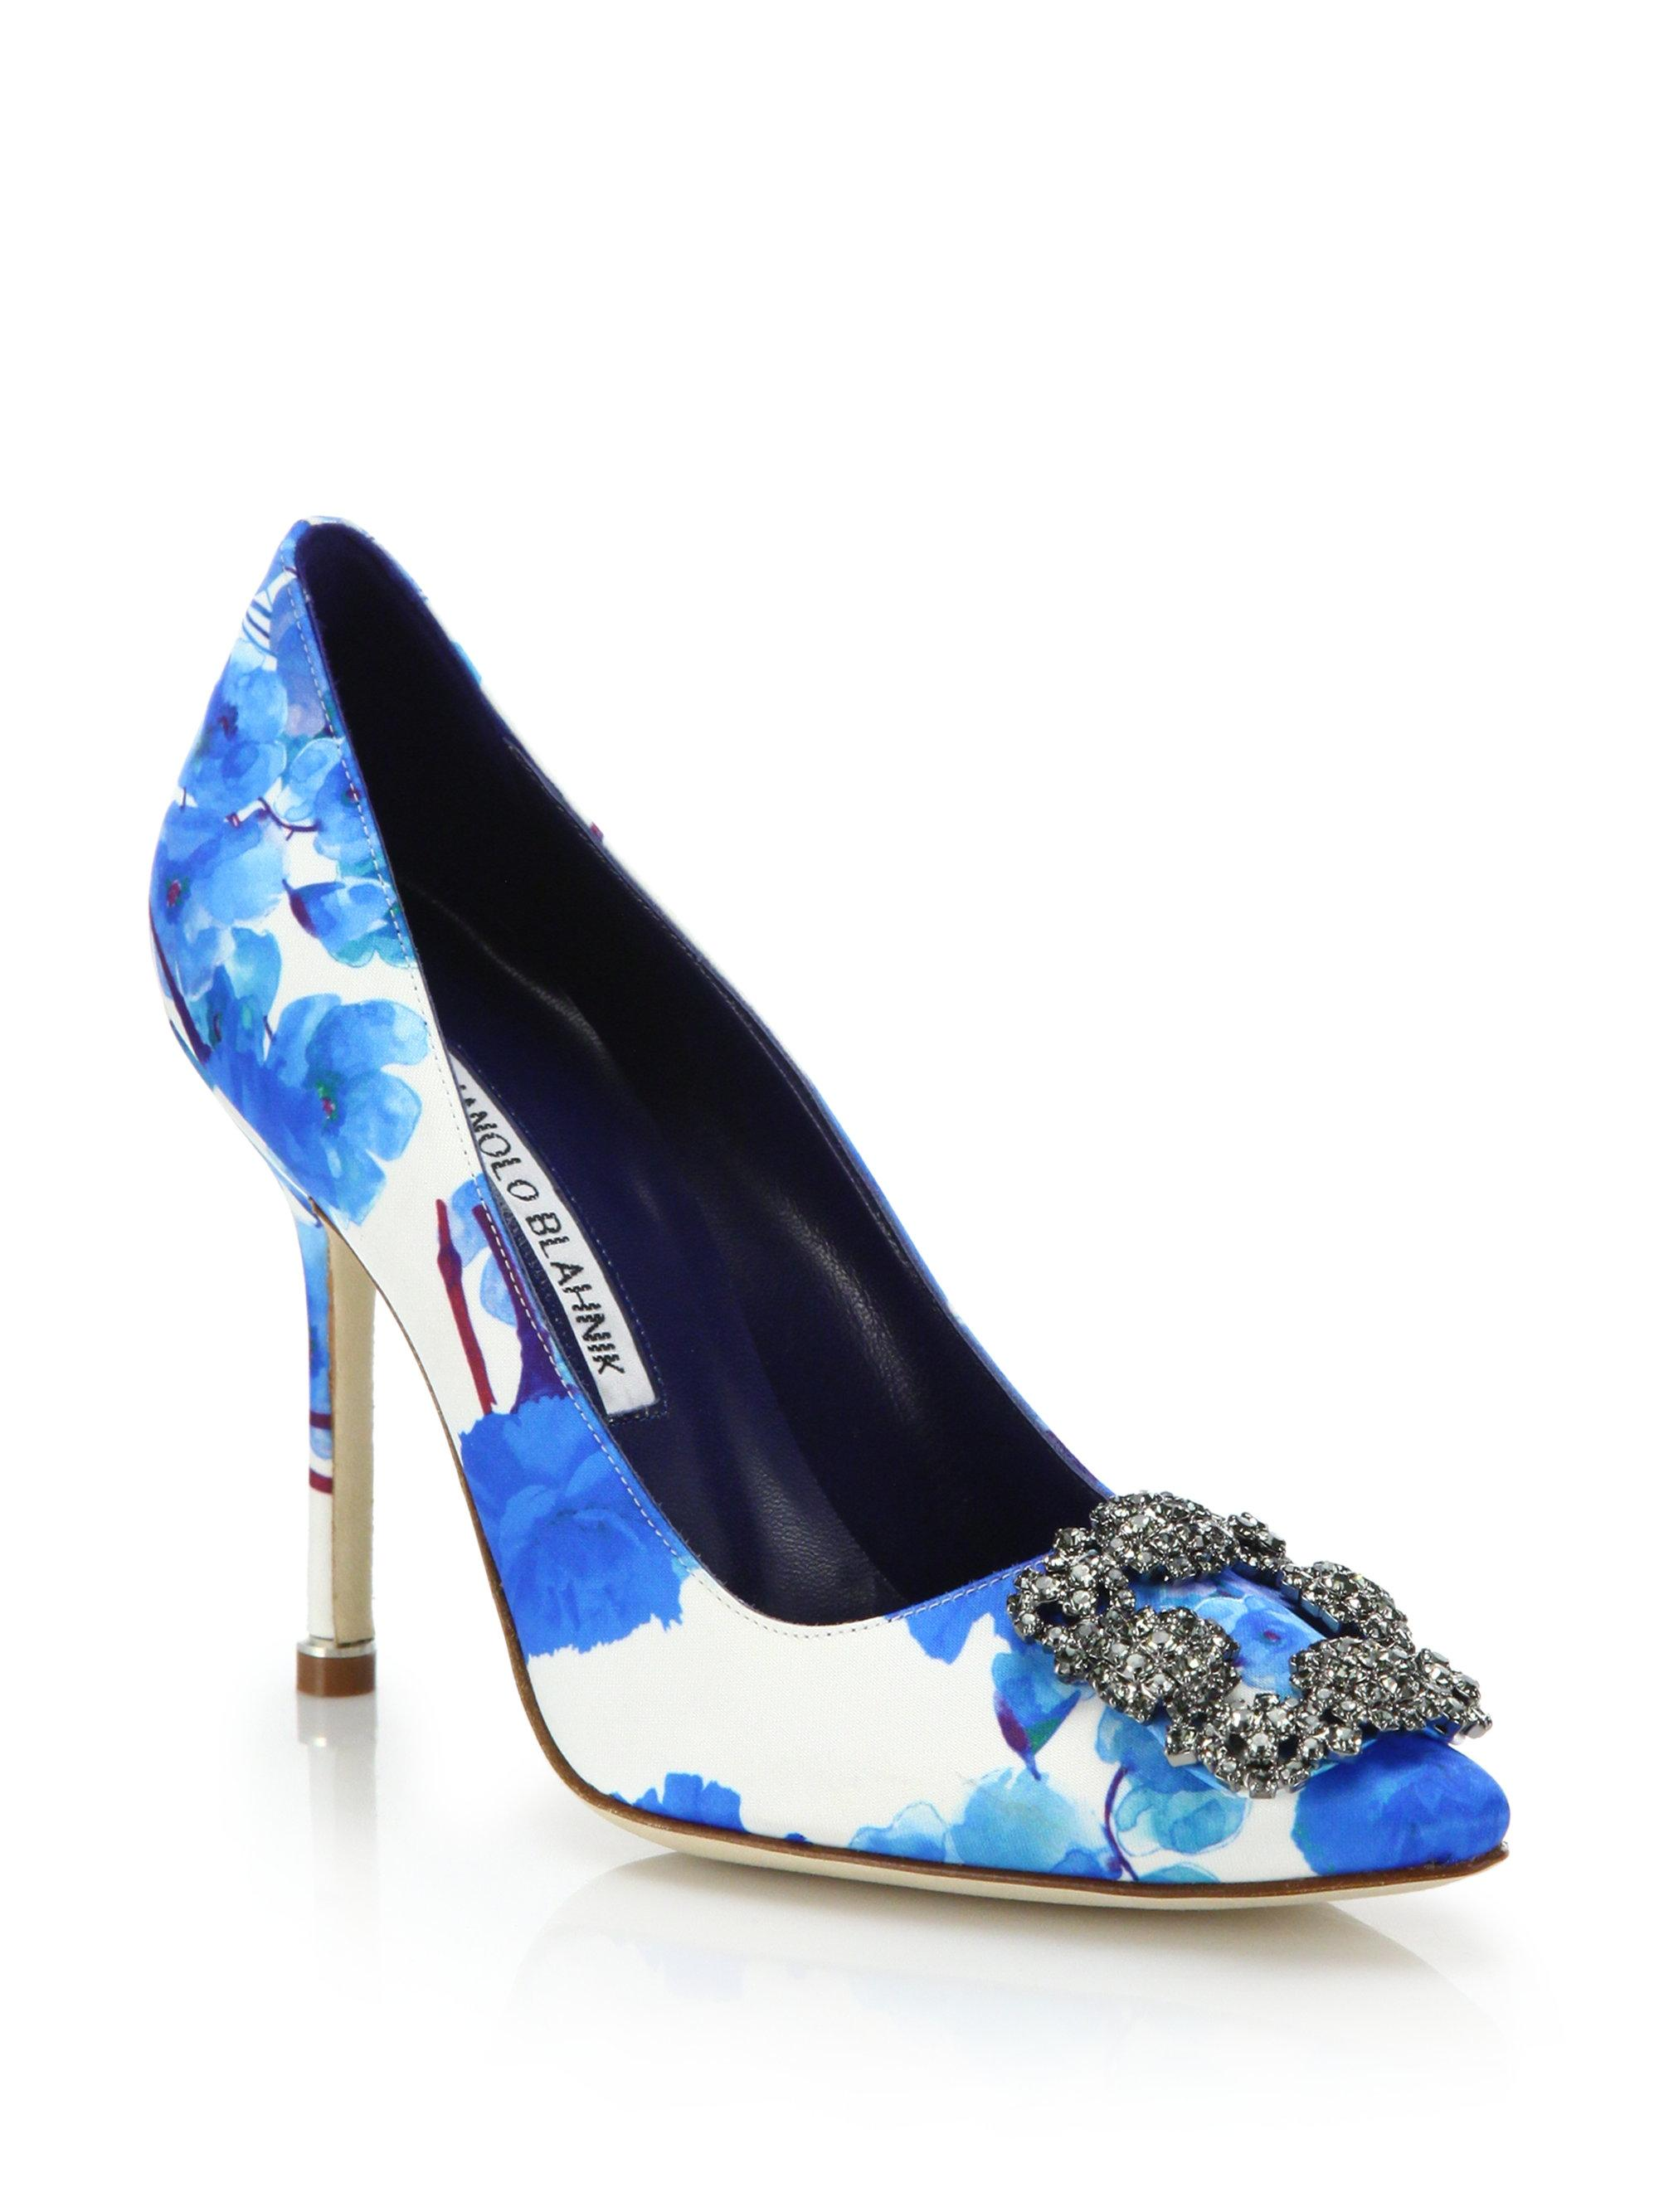 944aa5dc6dd3 Manolo Blahnik Blue and White Hangisi 105 High-heel Satin Satin Satin  Floral Pumps Size